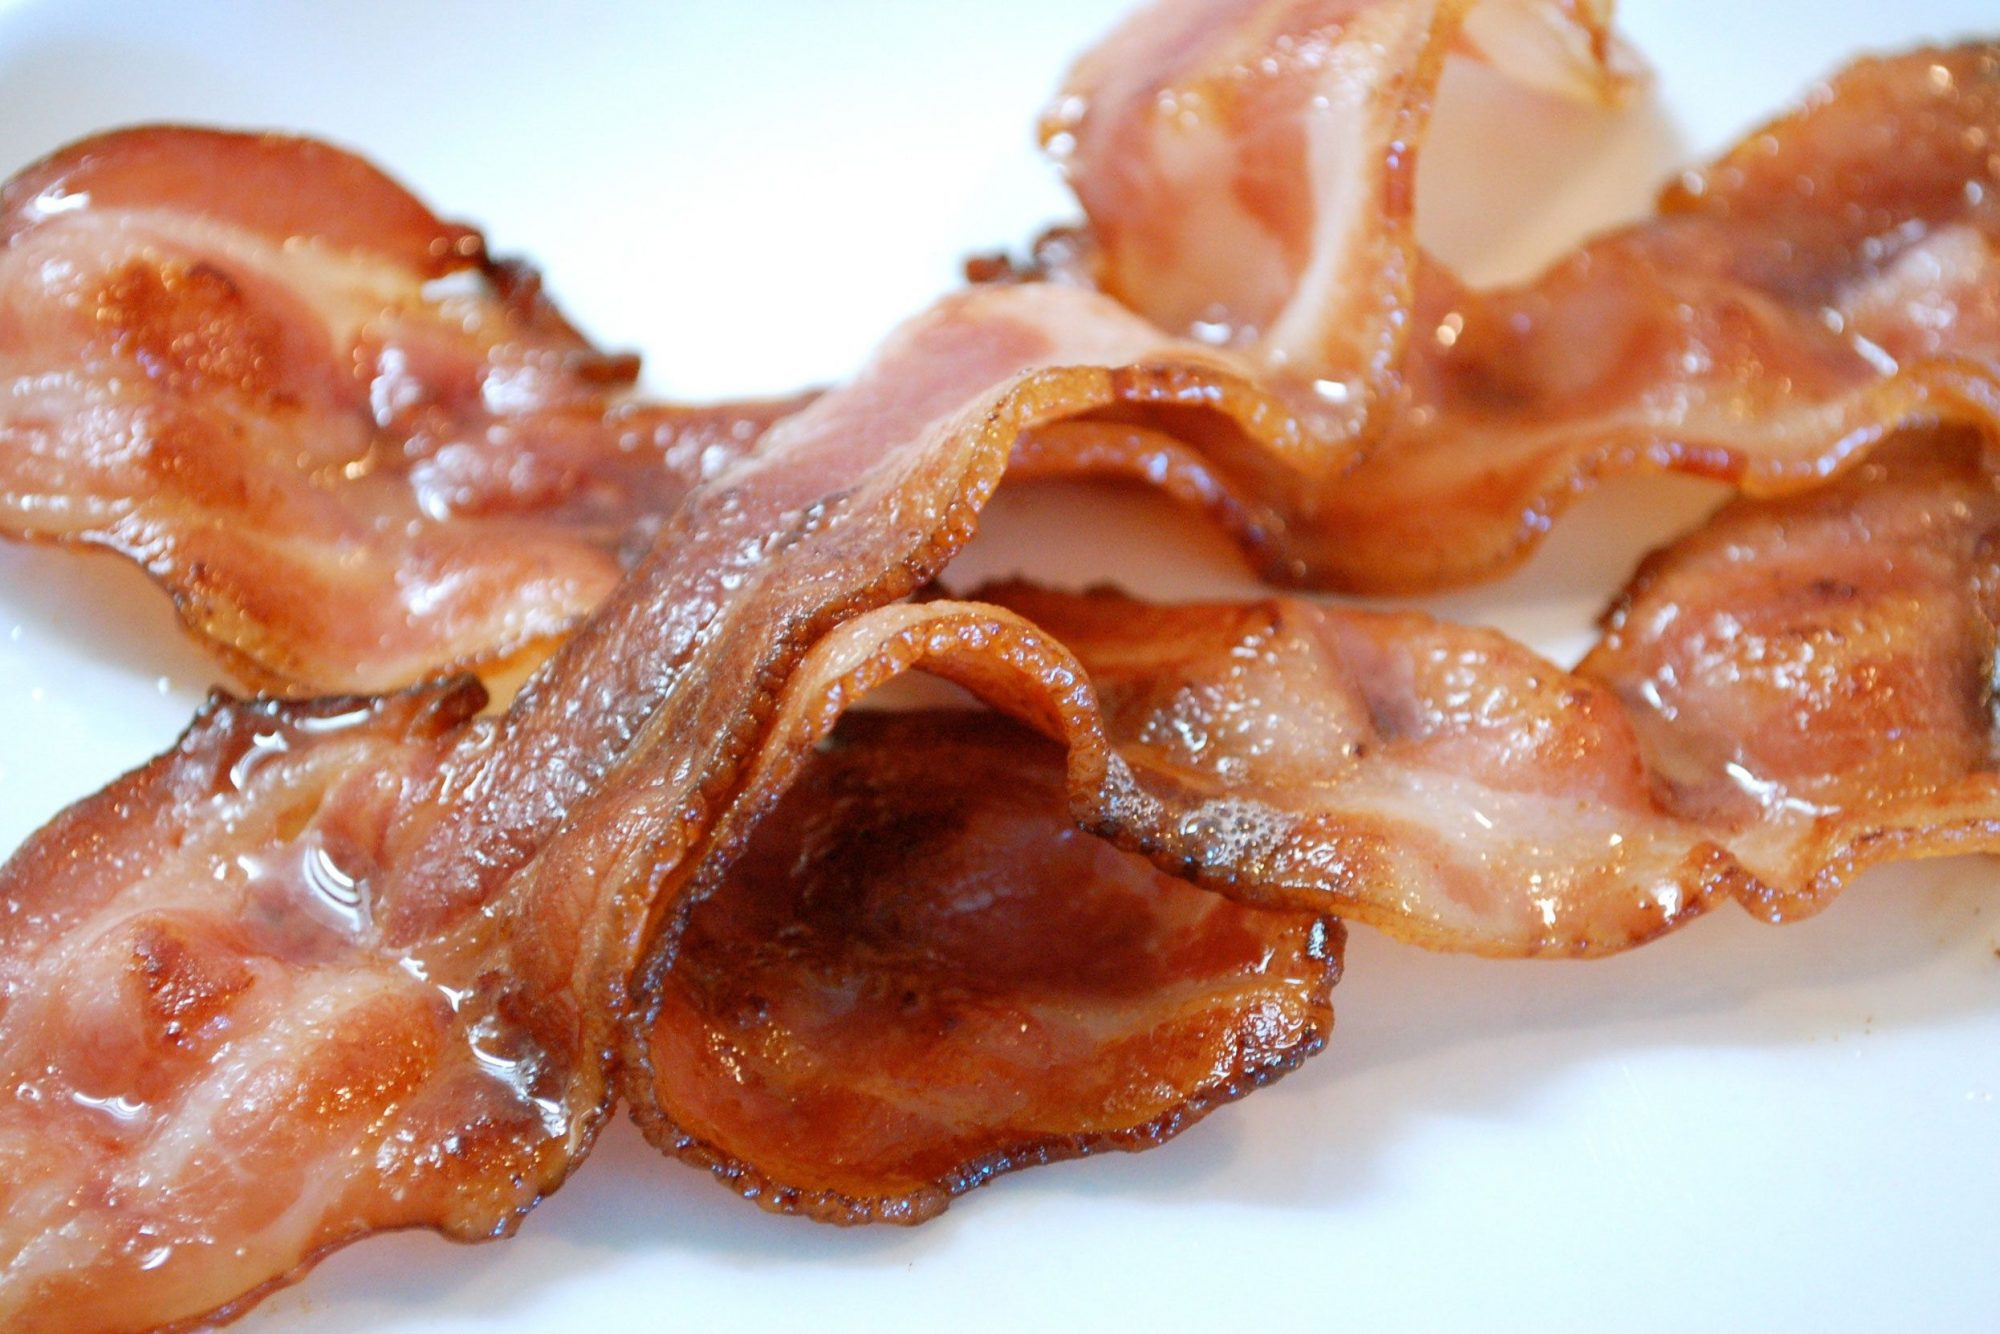 EC: Salting Bacon Is A Bad Idea, But I Do It Anyway